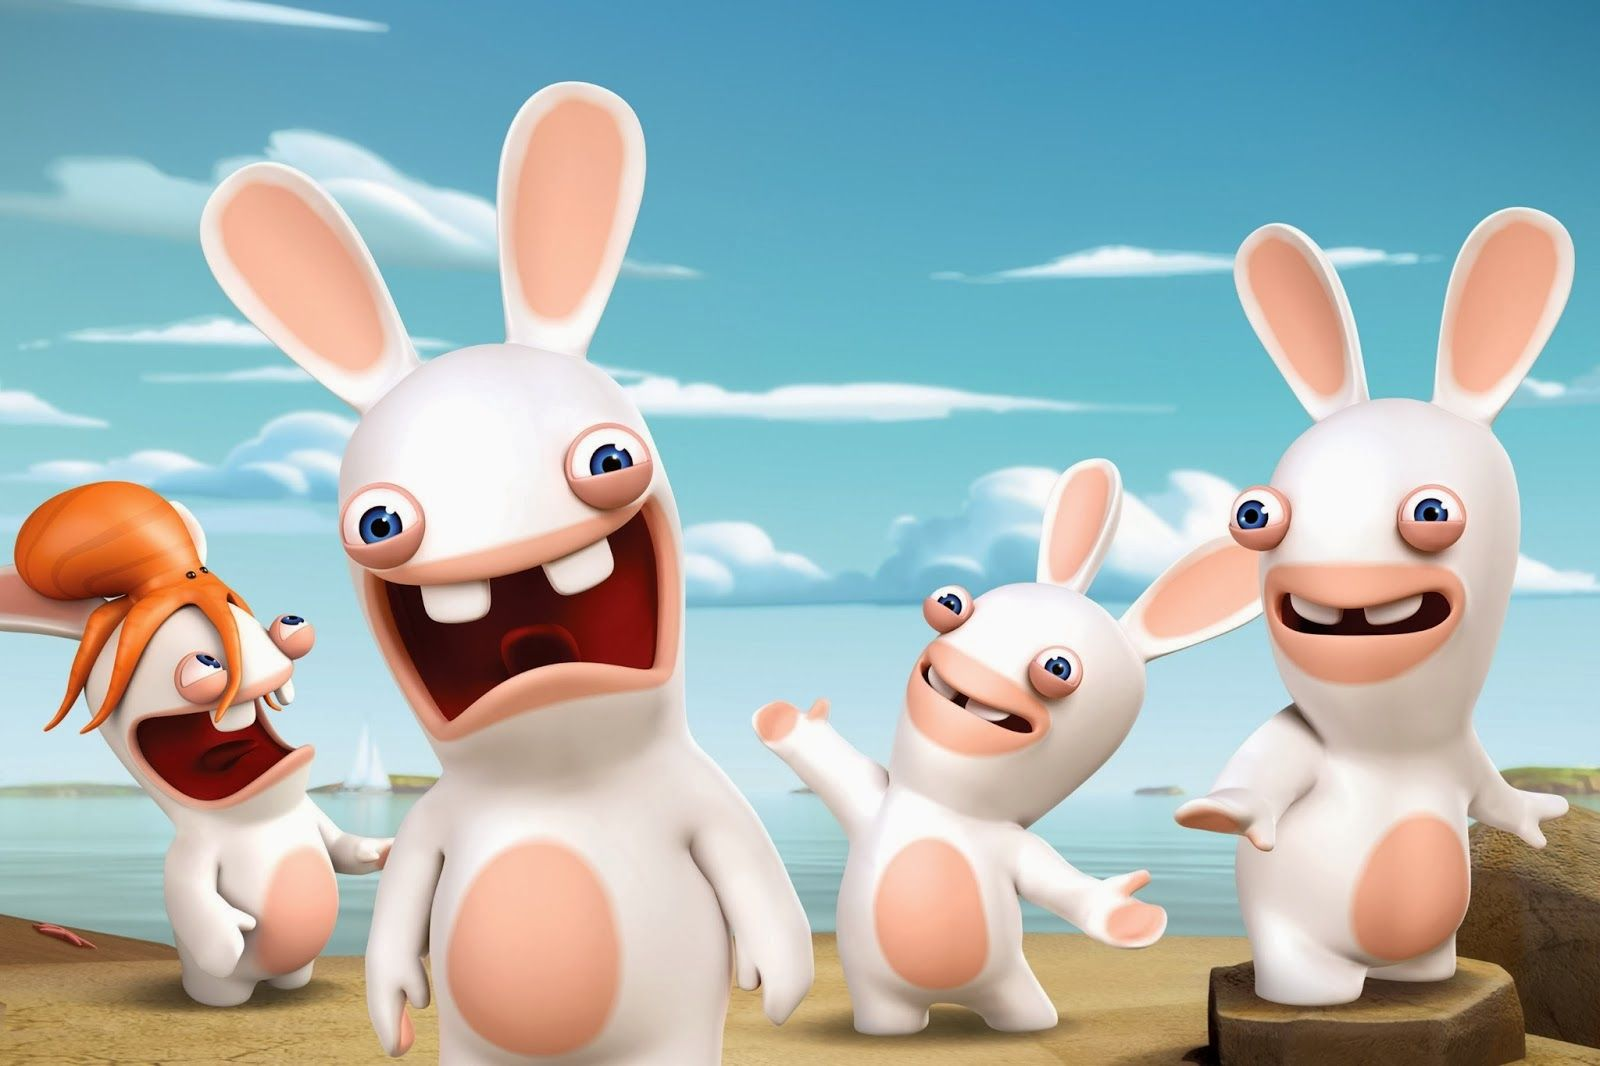 Ubisoft s wacky mischievous raving rabbids invade nickelodeon usa saturday august 2013 at a et pt during brand new animated series premiere rabbids